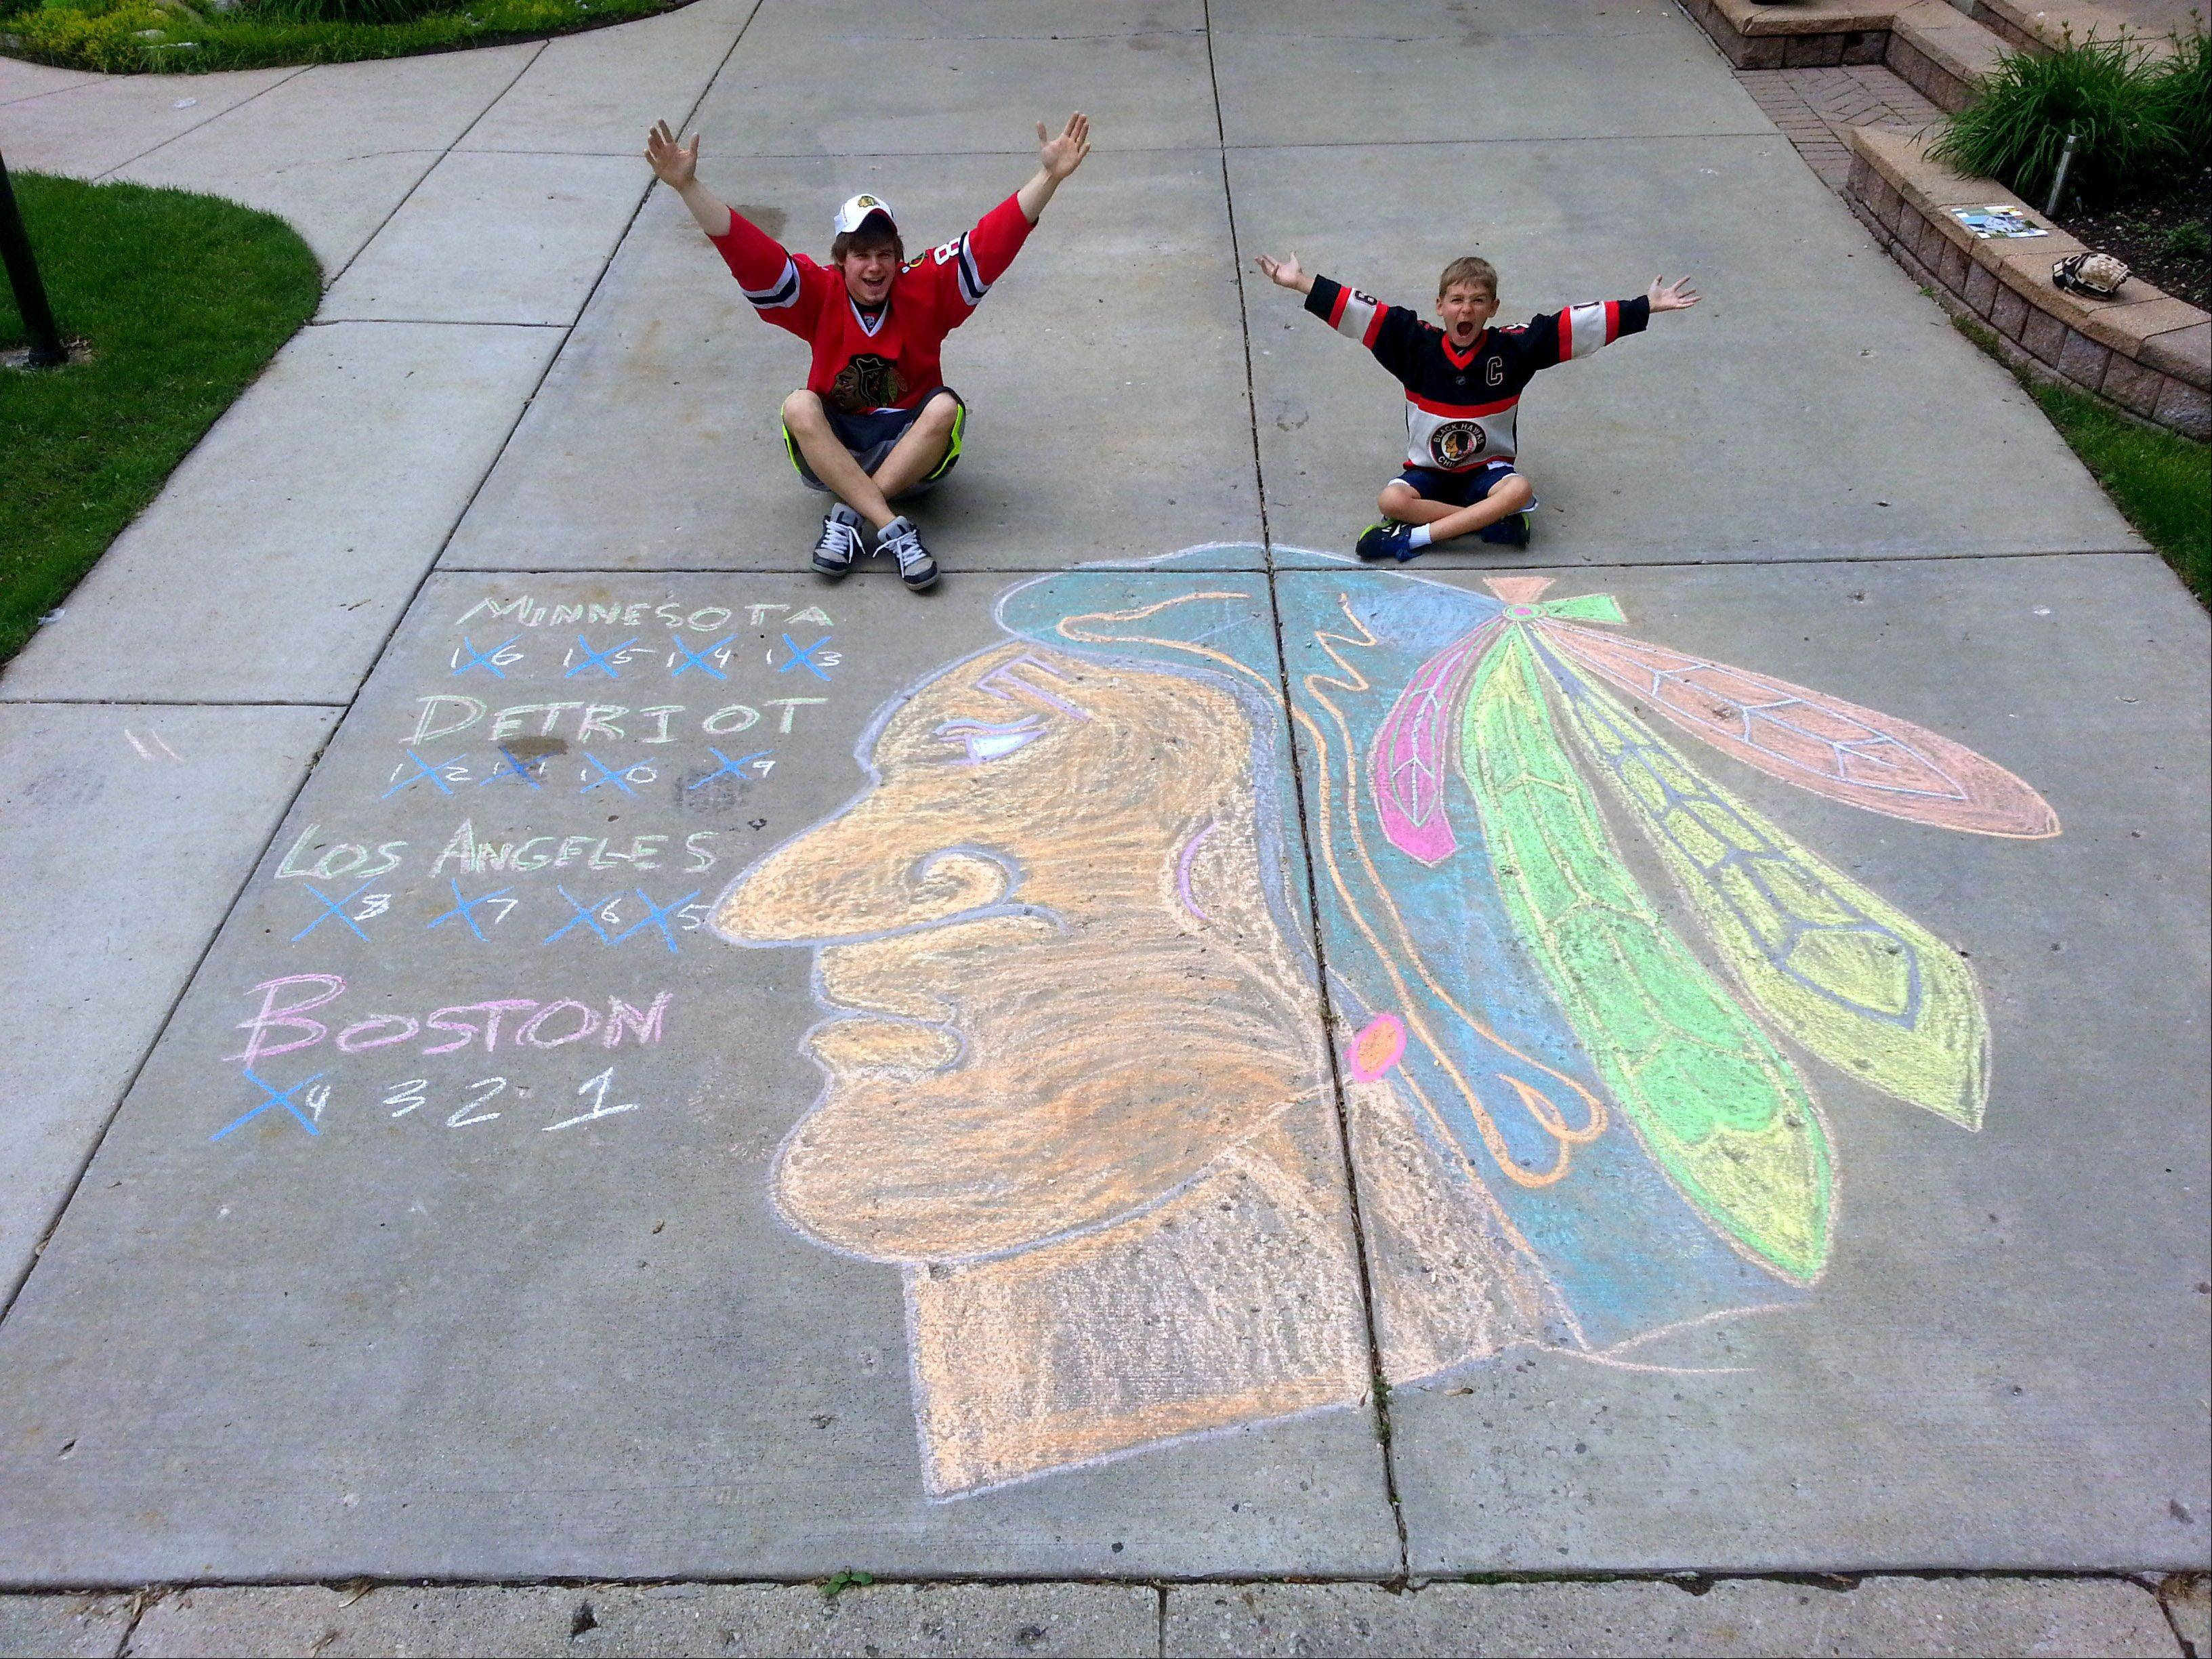 Daniel and Sebastian Dorszewski mark their Blackhawks spirit with a chalk drawing on a Palatine driveway of the Chicago Blackhawks logo.